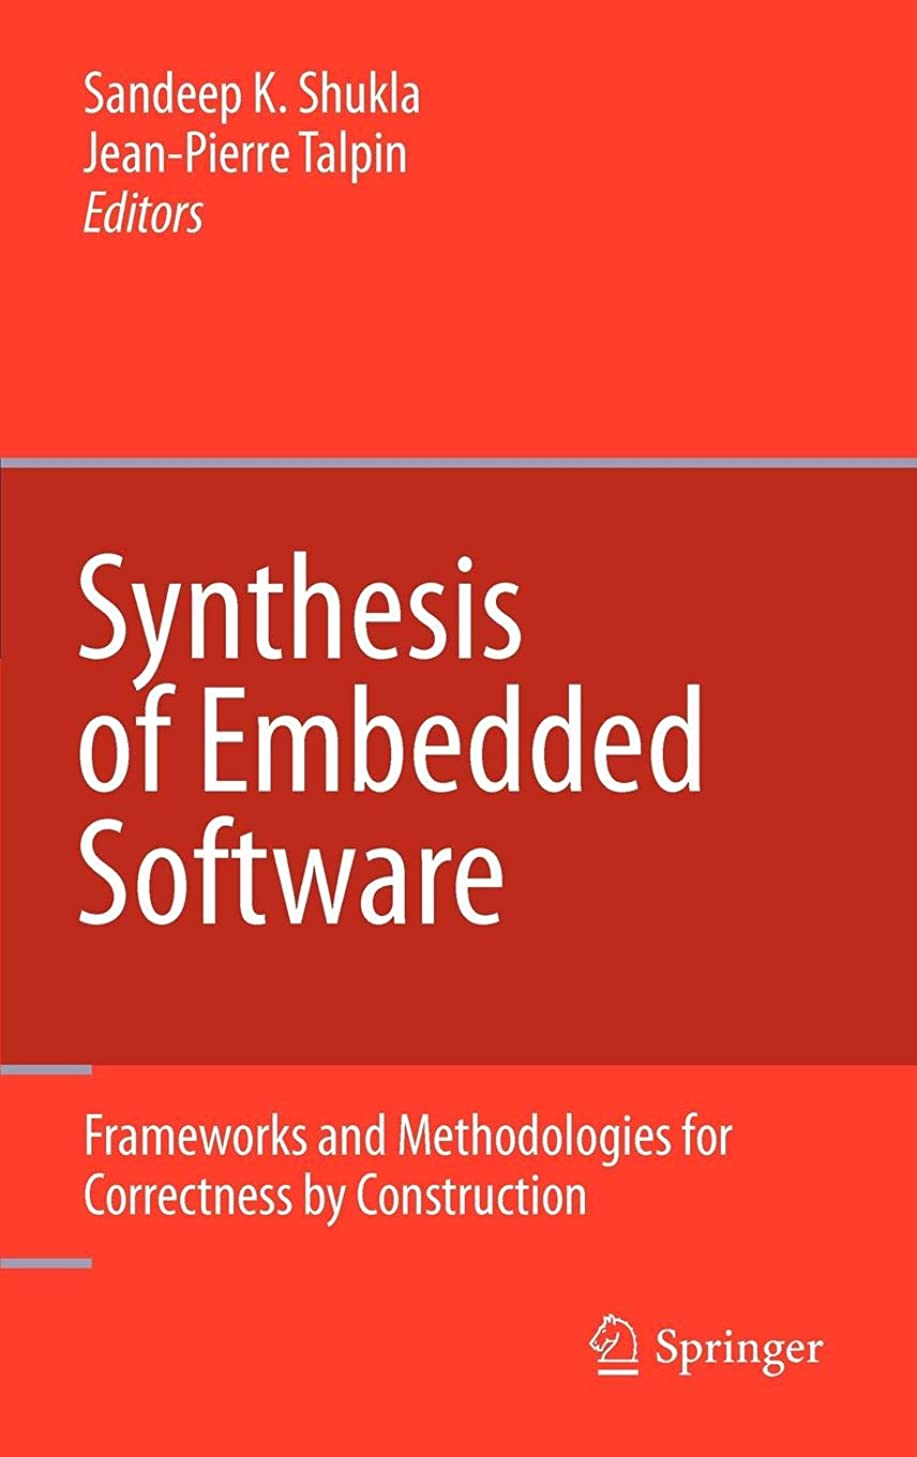 Synthesis of Embedded Software: Frameworks and Methodologies for Correctness by Construction